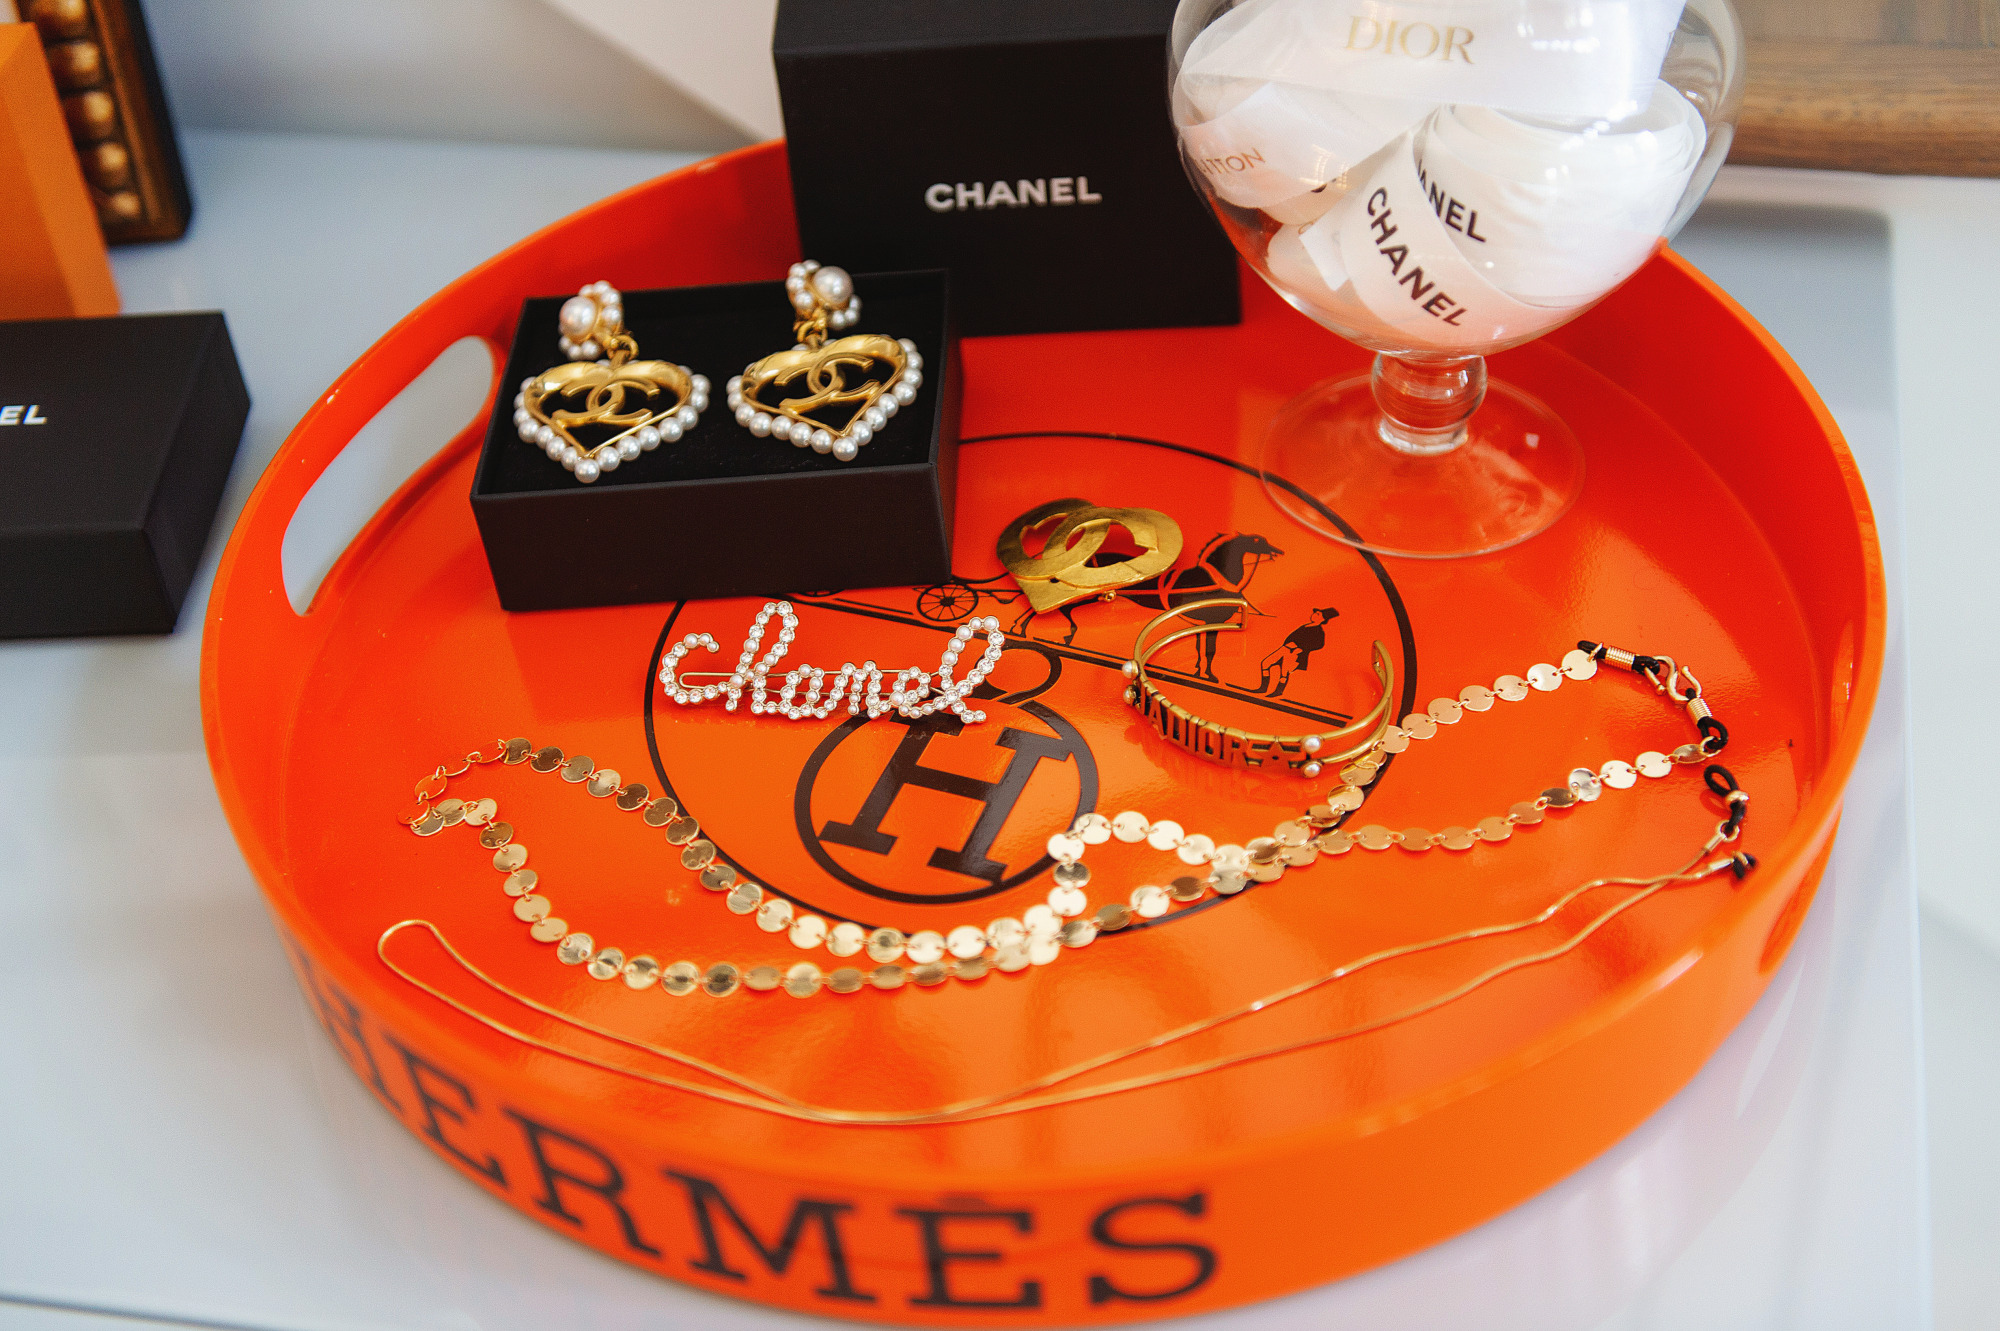 Blog Design by popular US lifestyle blog, The Sweetest Thing: image of a Hermes tray containing Chanel earrings, a Chanel hair clip, and some gold necklaces.